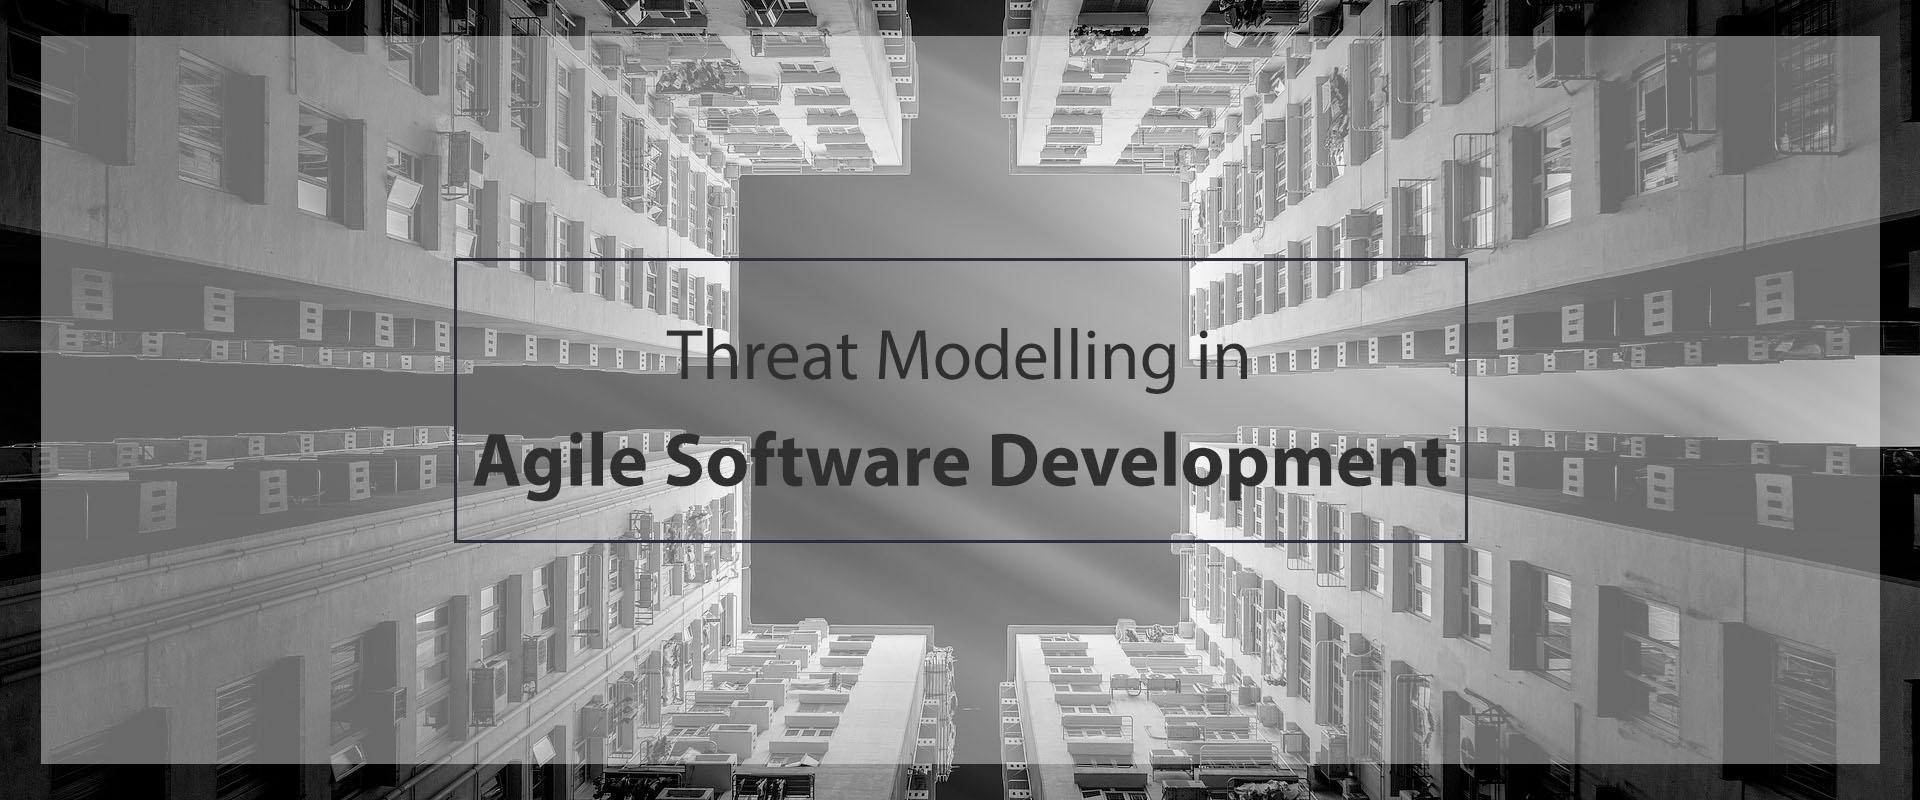 Threat Modelling in Agile Software Development | HSCC